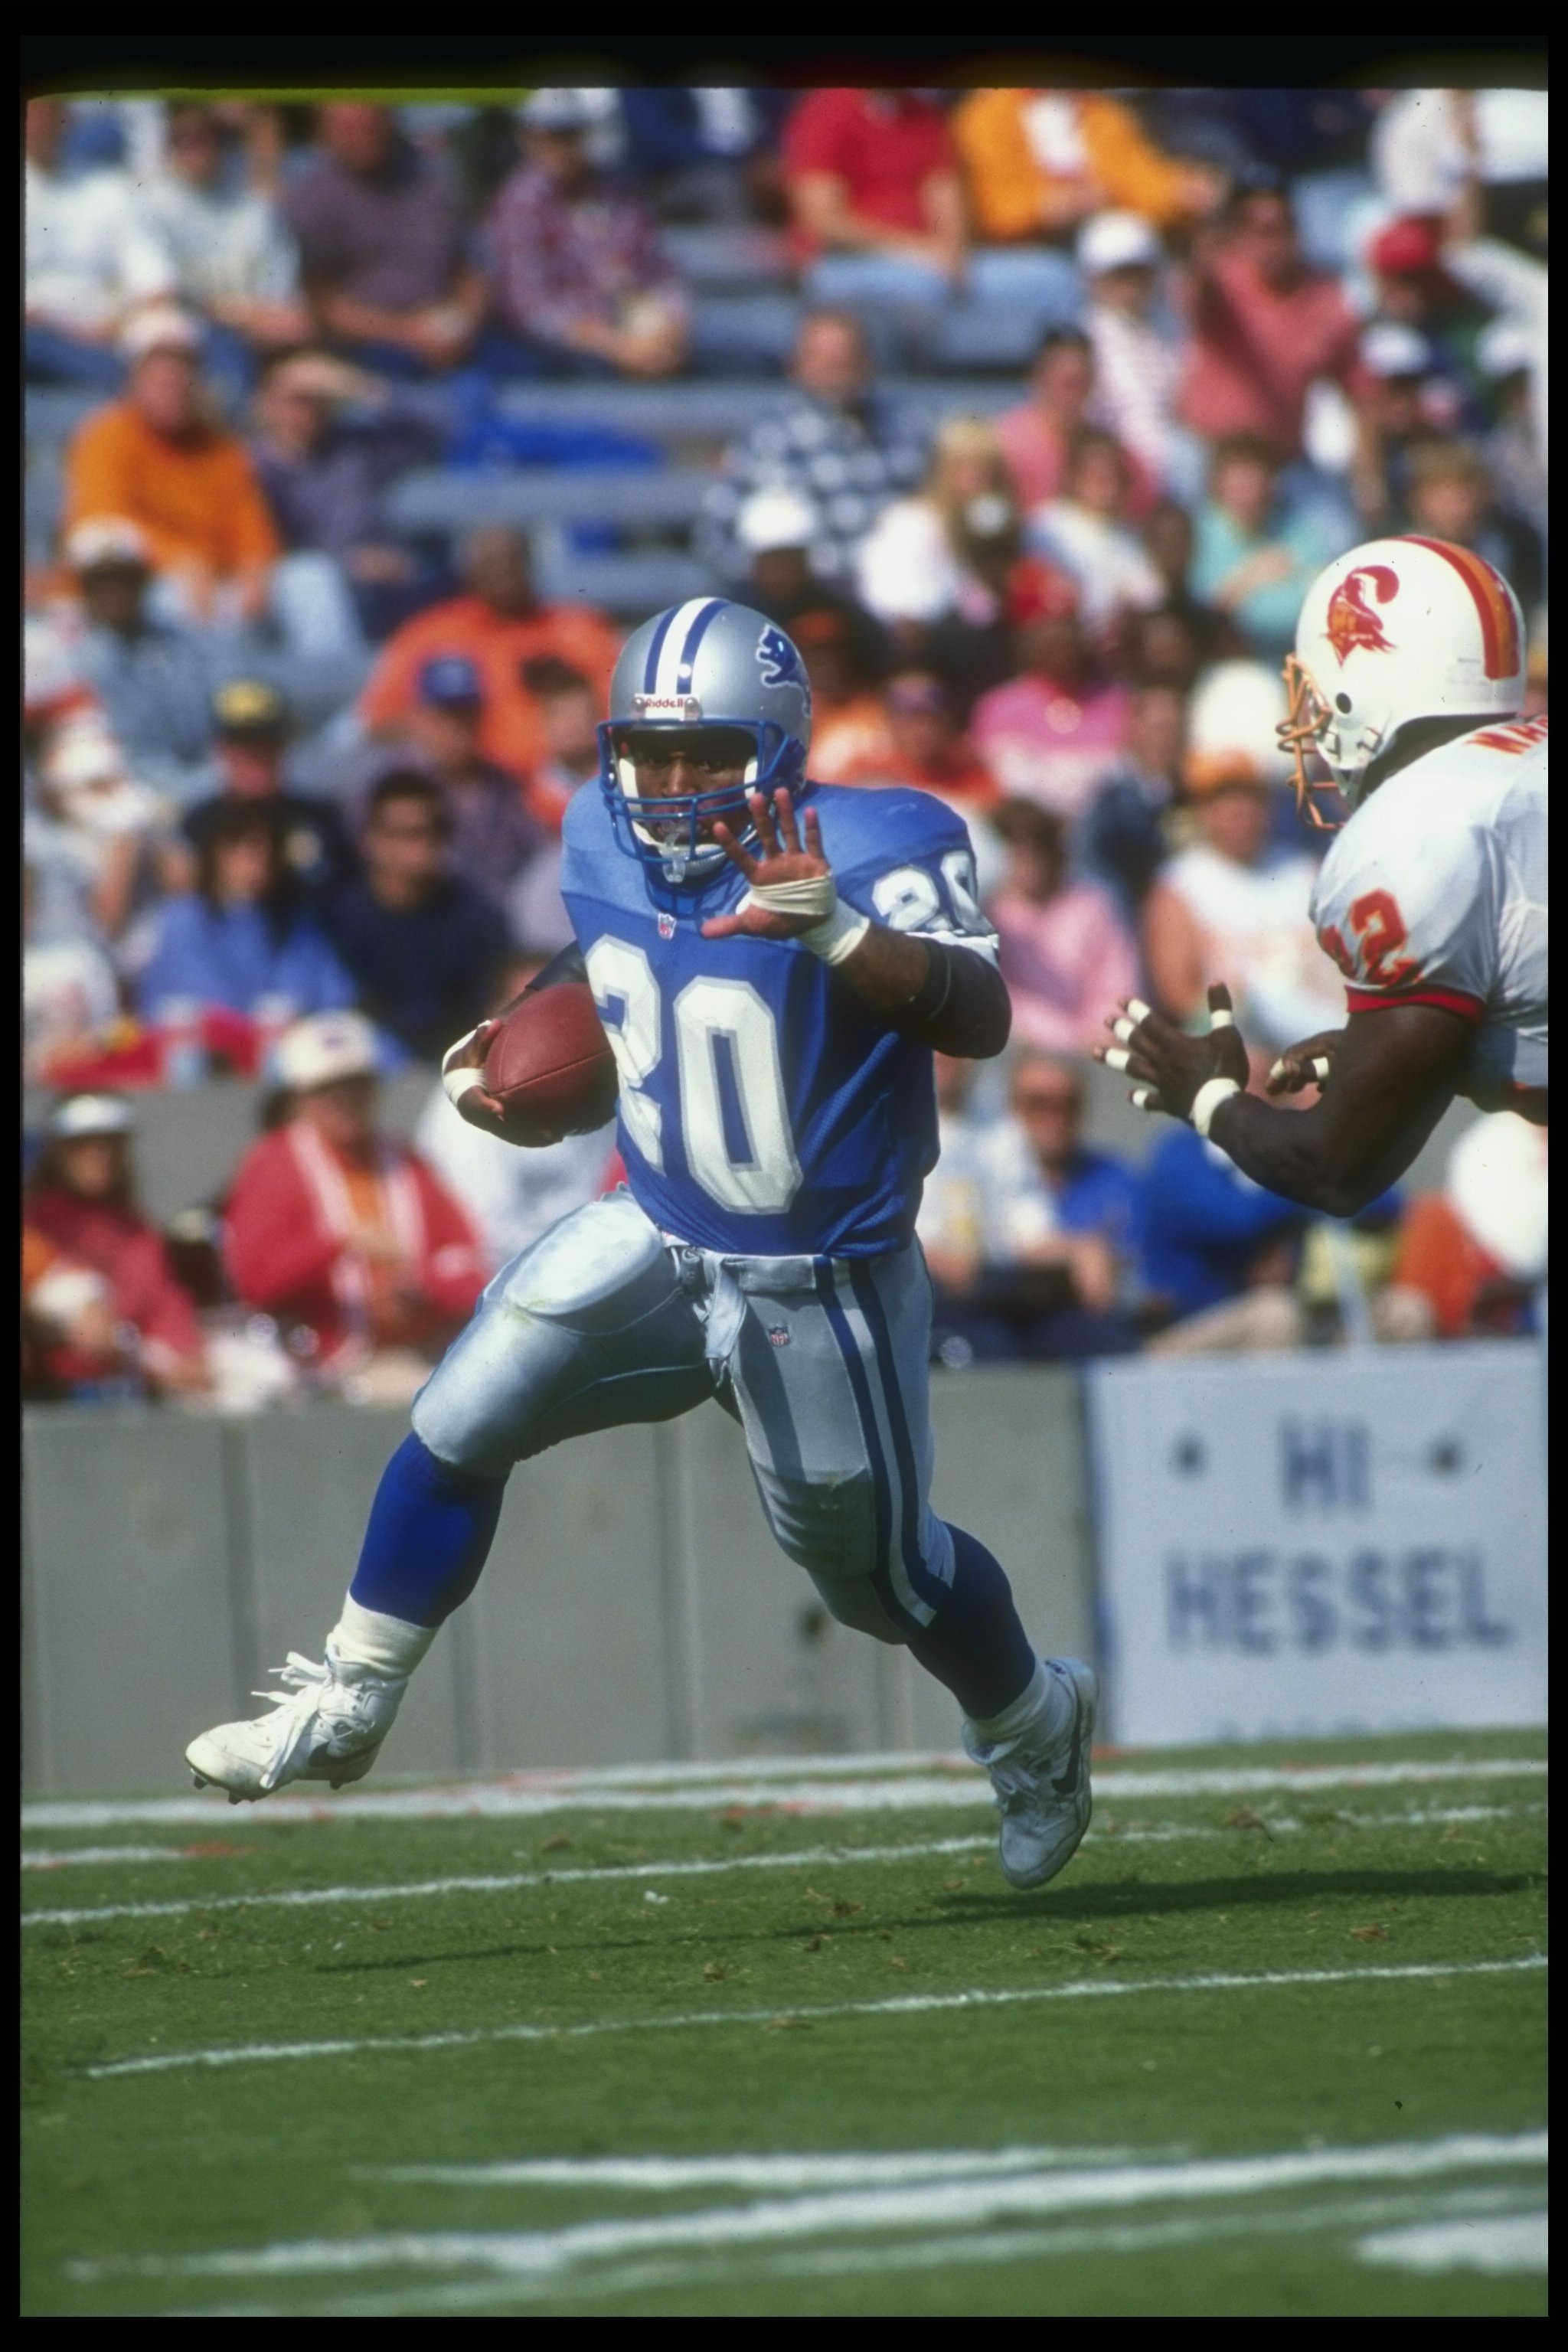 10 Nov 1991: Running back Barry Sanders of the Detroit Lions moves the ball during a game against the Tampa Bay Buccaneers at Tampa Stadium in Tampa, Florida. The Buccaneers won the game, 30-21.